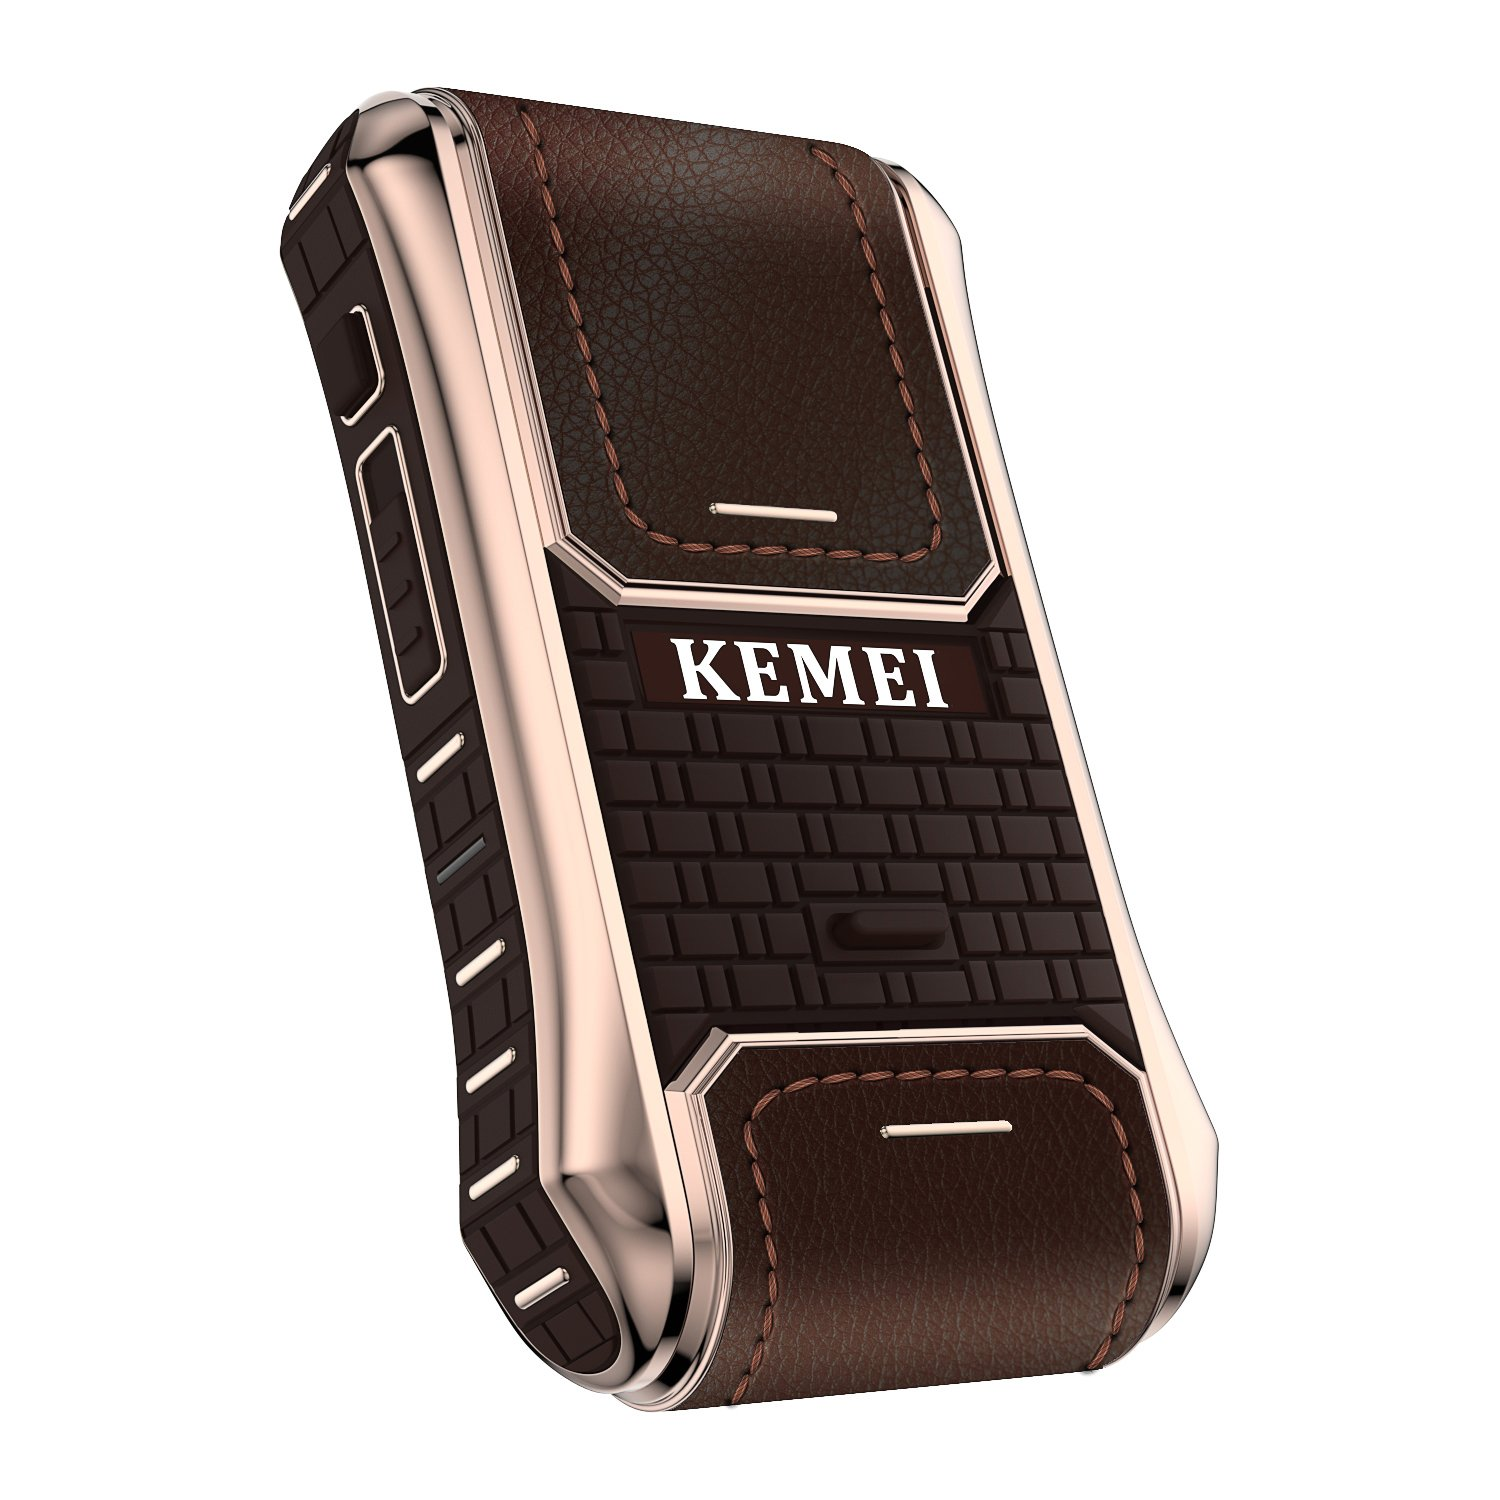 Kemei 2 in 1 Men Electric Shaver Leather Case Reciprocating Electric Shaver Rechargeable Cordless Razor Vintage km-5300 Brown